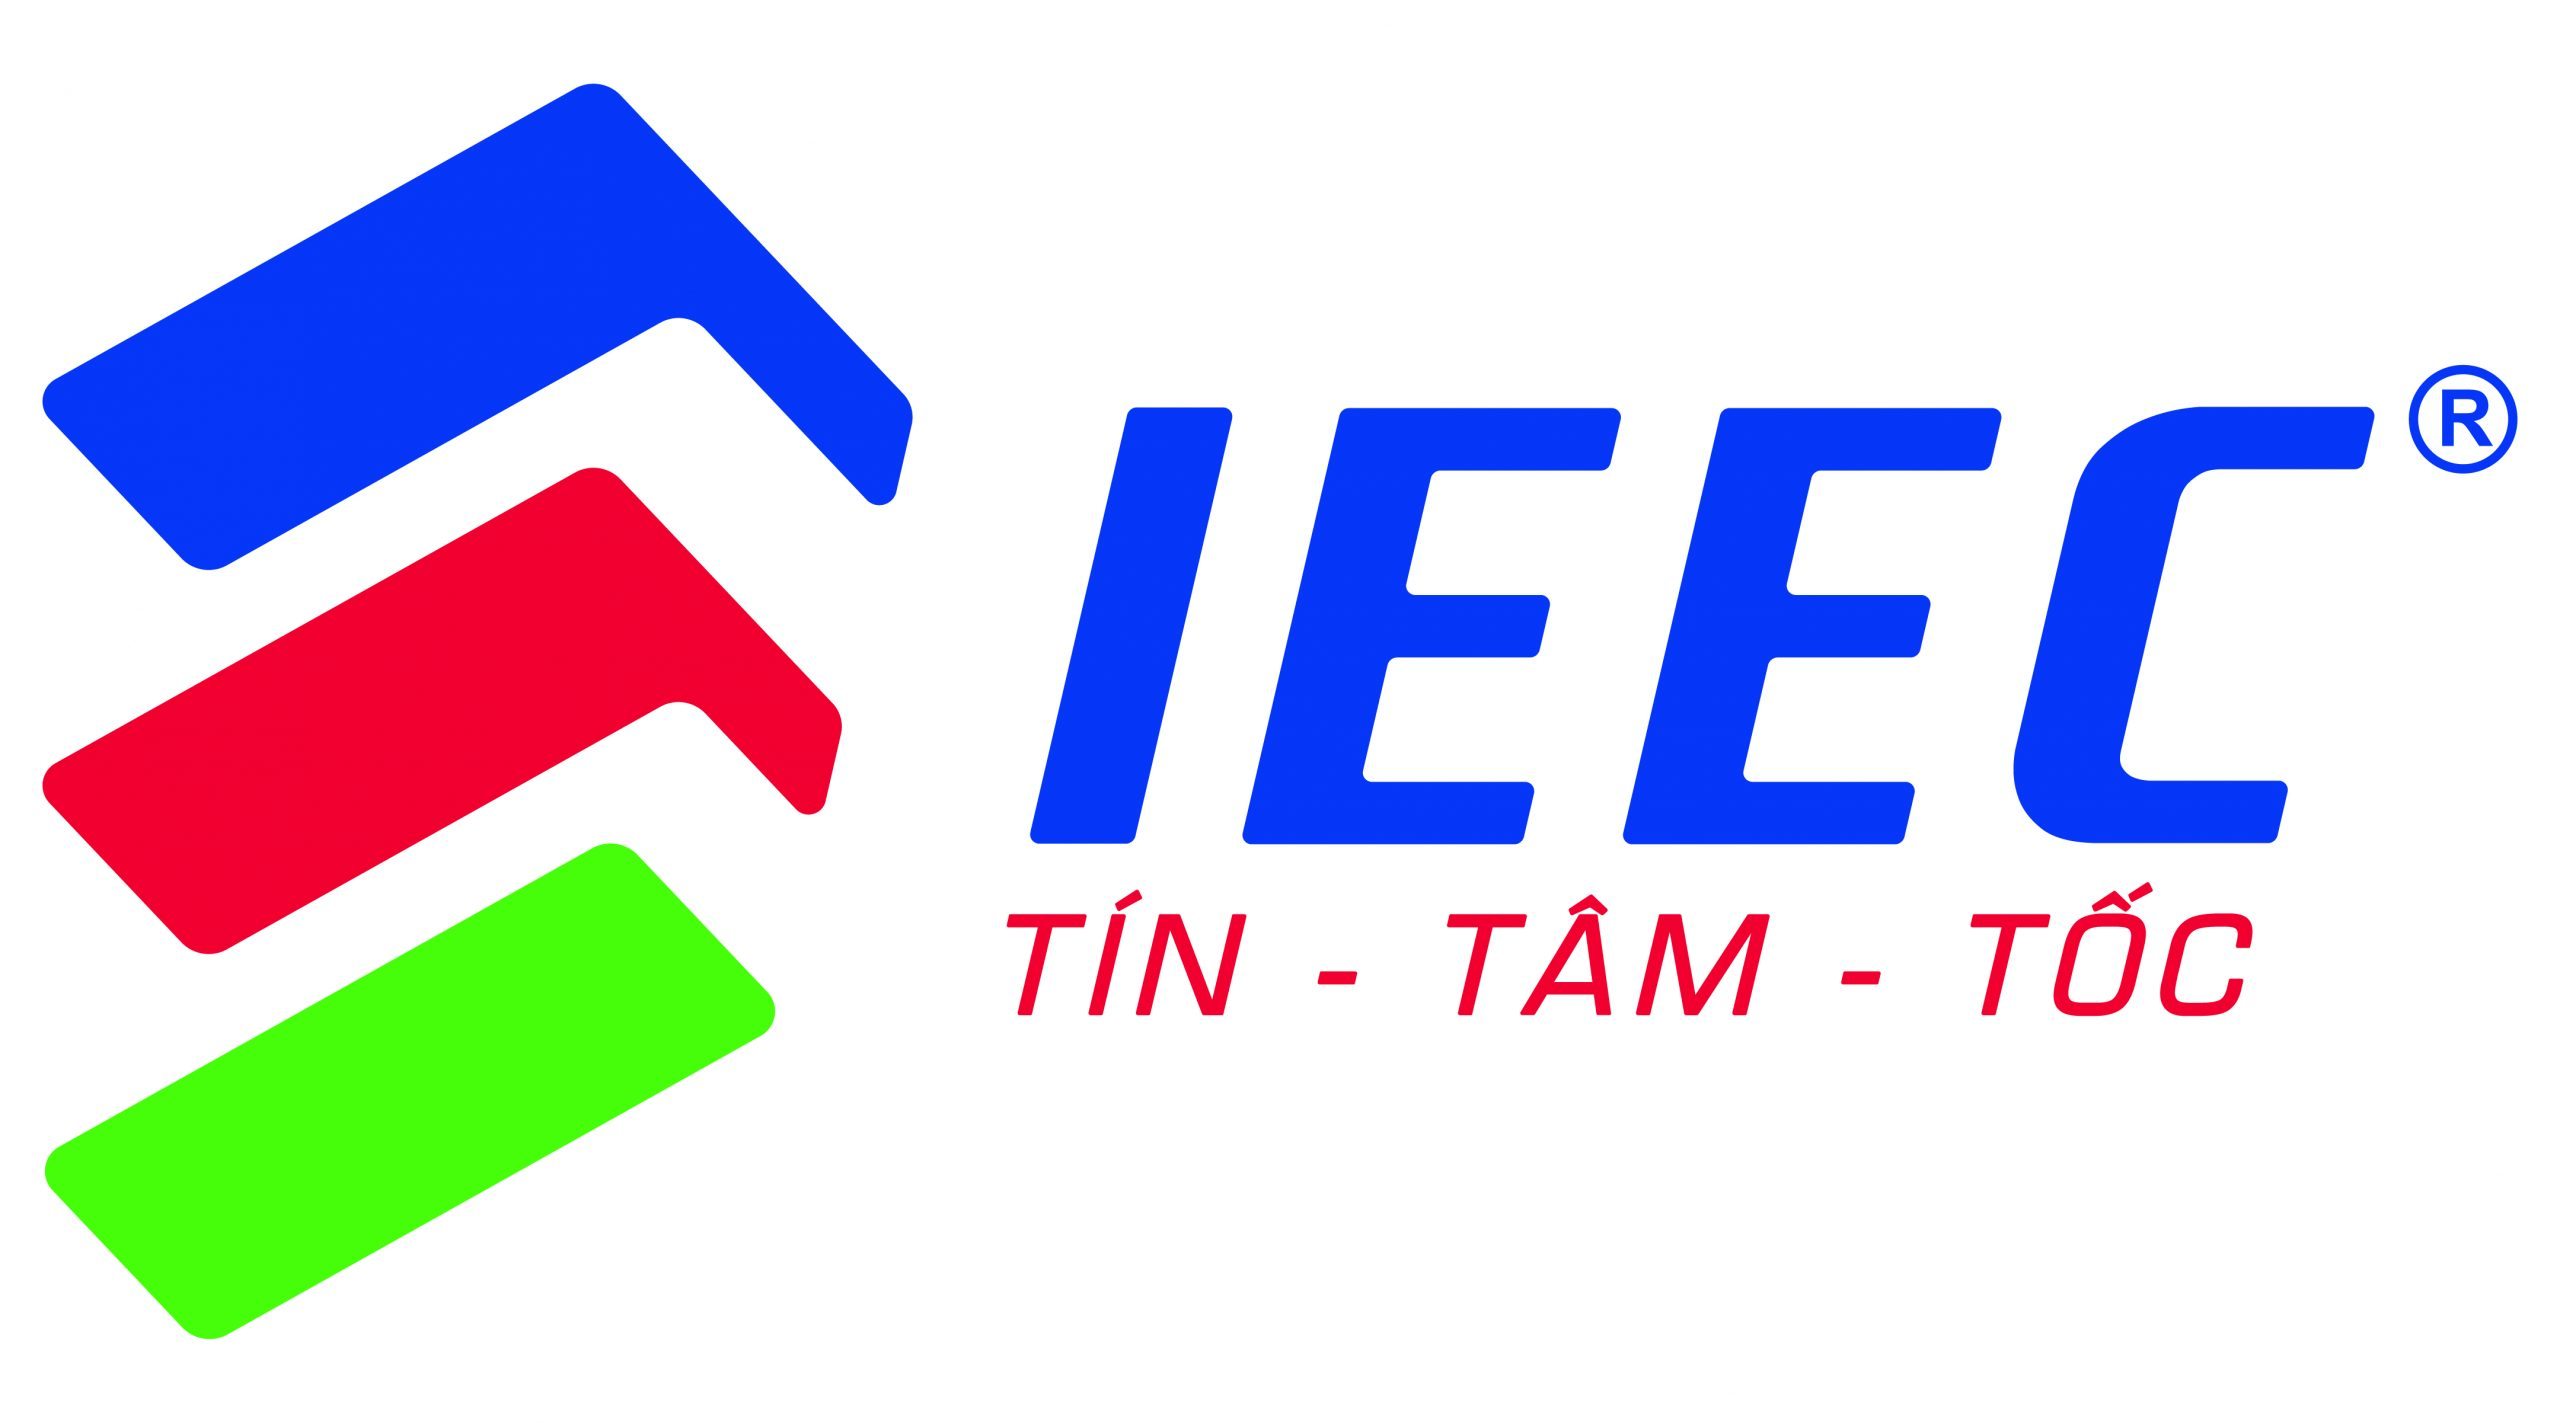 WELCOME TO CÔNG TY CỔ PHẦN IEEC VIỆT NAM